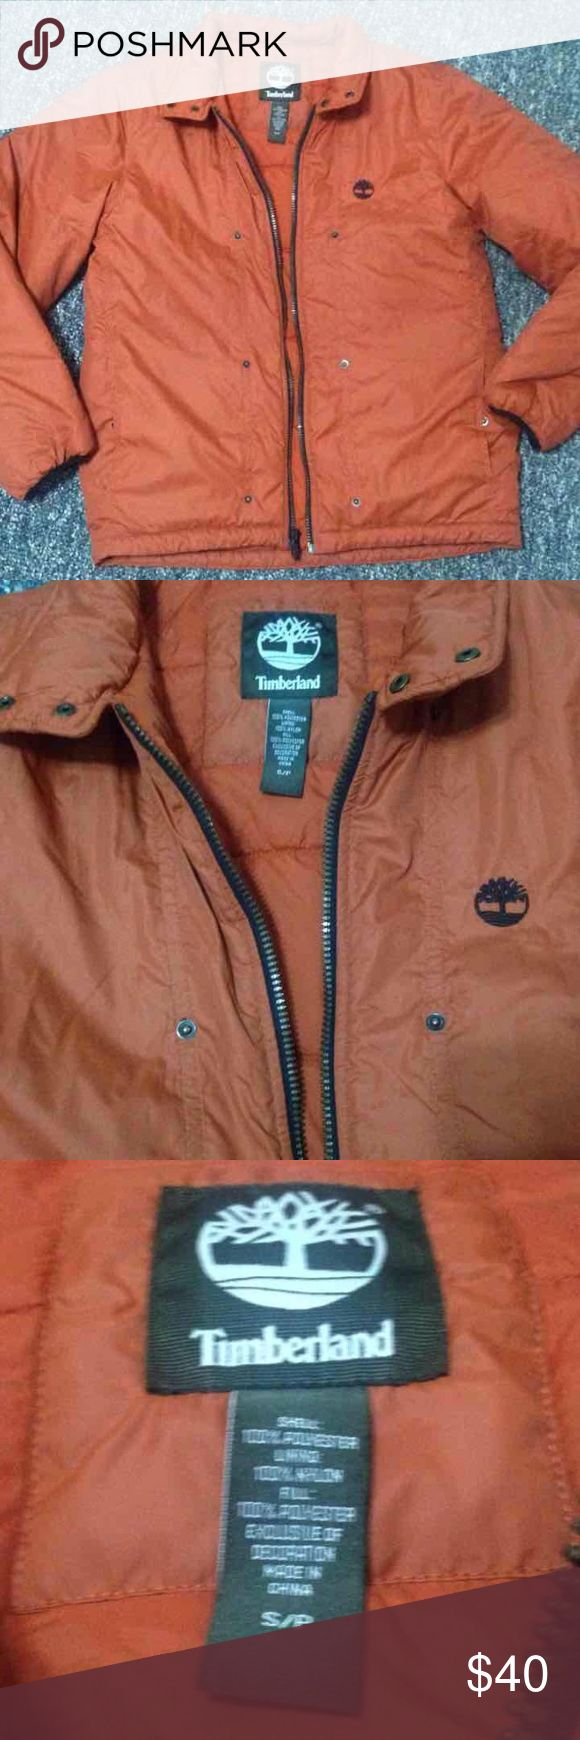 "Timberland Jacket Can be worn Womans or Mens. New without tags. Adjustable waist. Measurements 27.5"" top shoulder seam to bottom 23"" across side to side (46"" round) 21"" sleeve pit to wrist Says size small but fits: Fits woman's large to xl  Fits Men's small to medium Timberland Jackets & Coats Puffers"